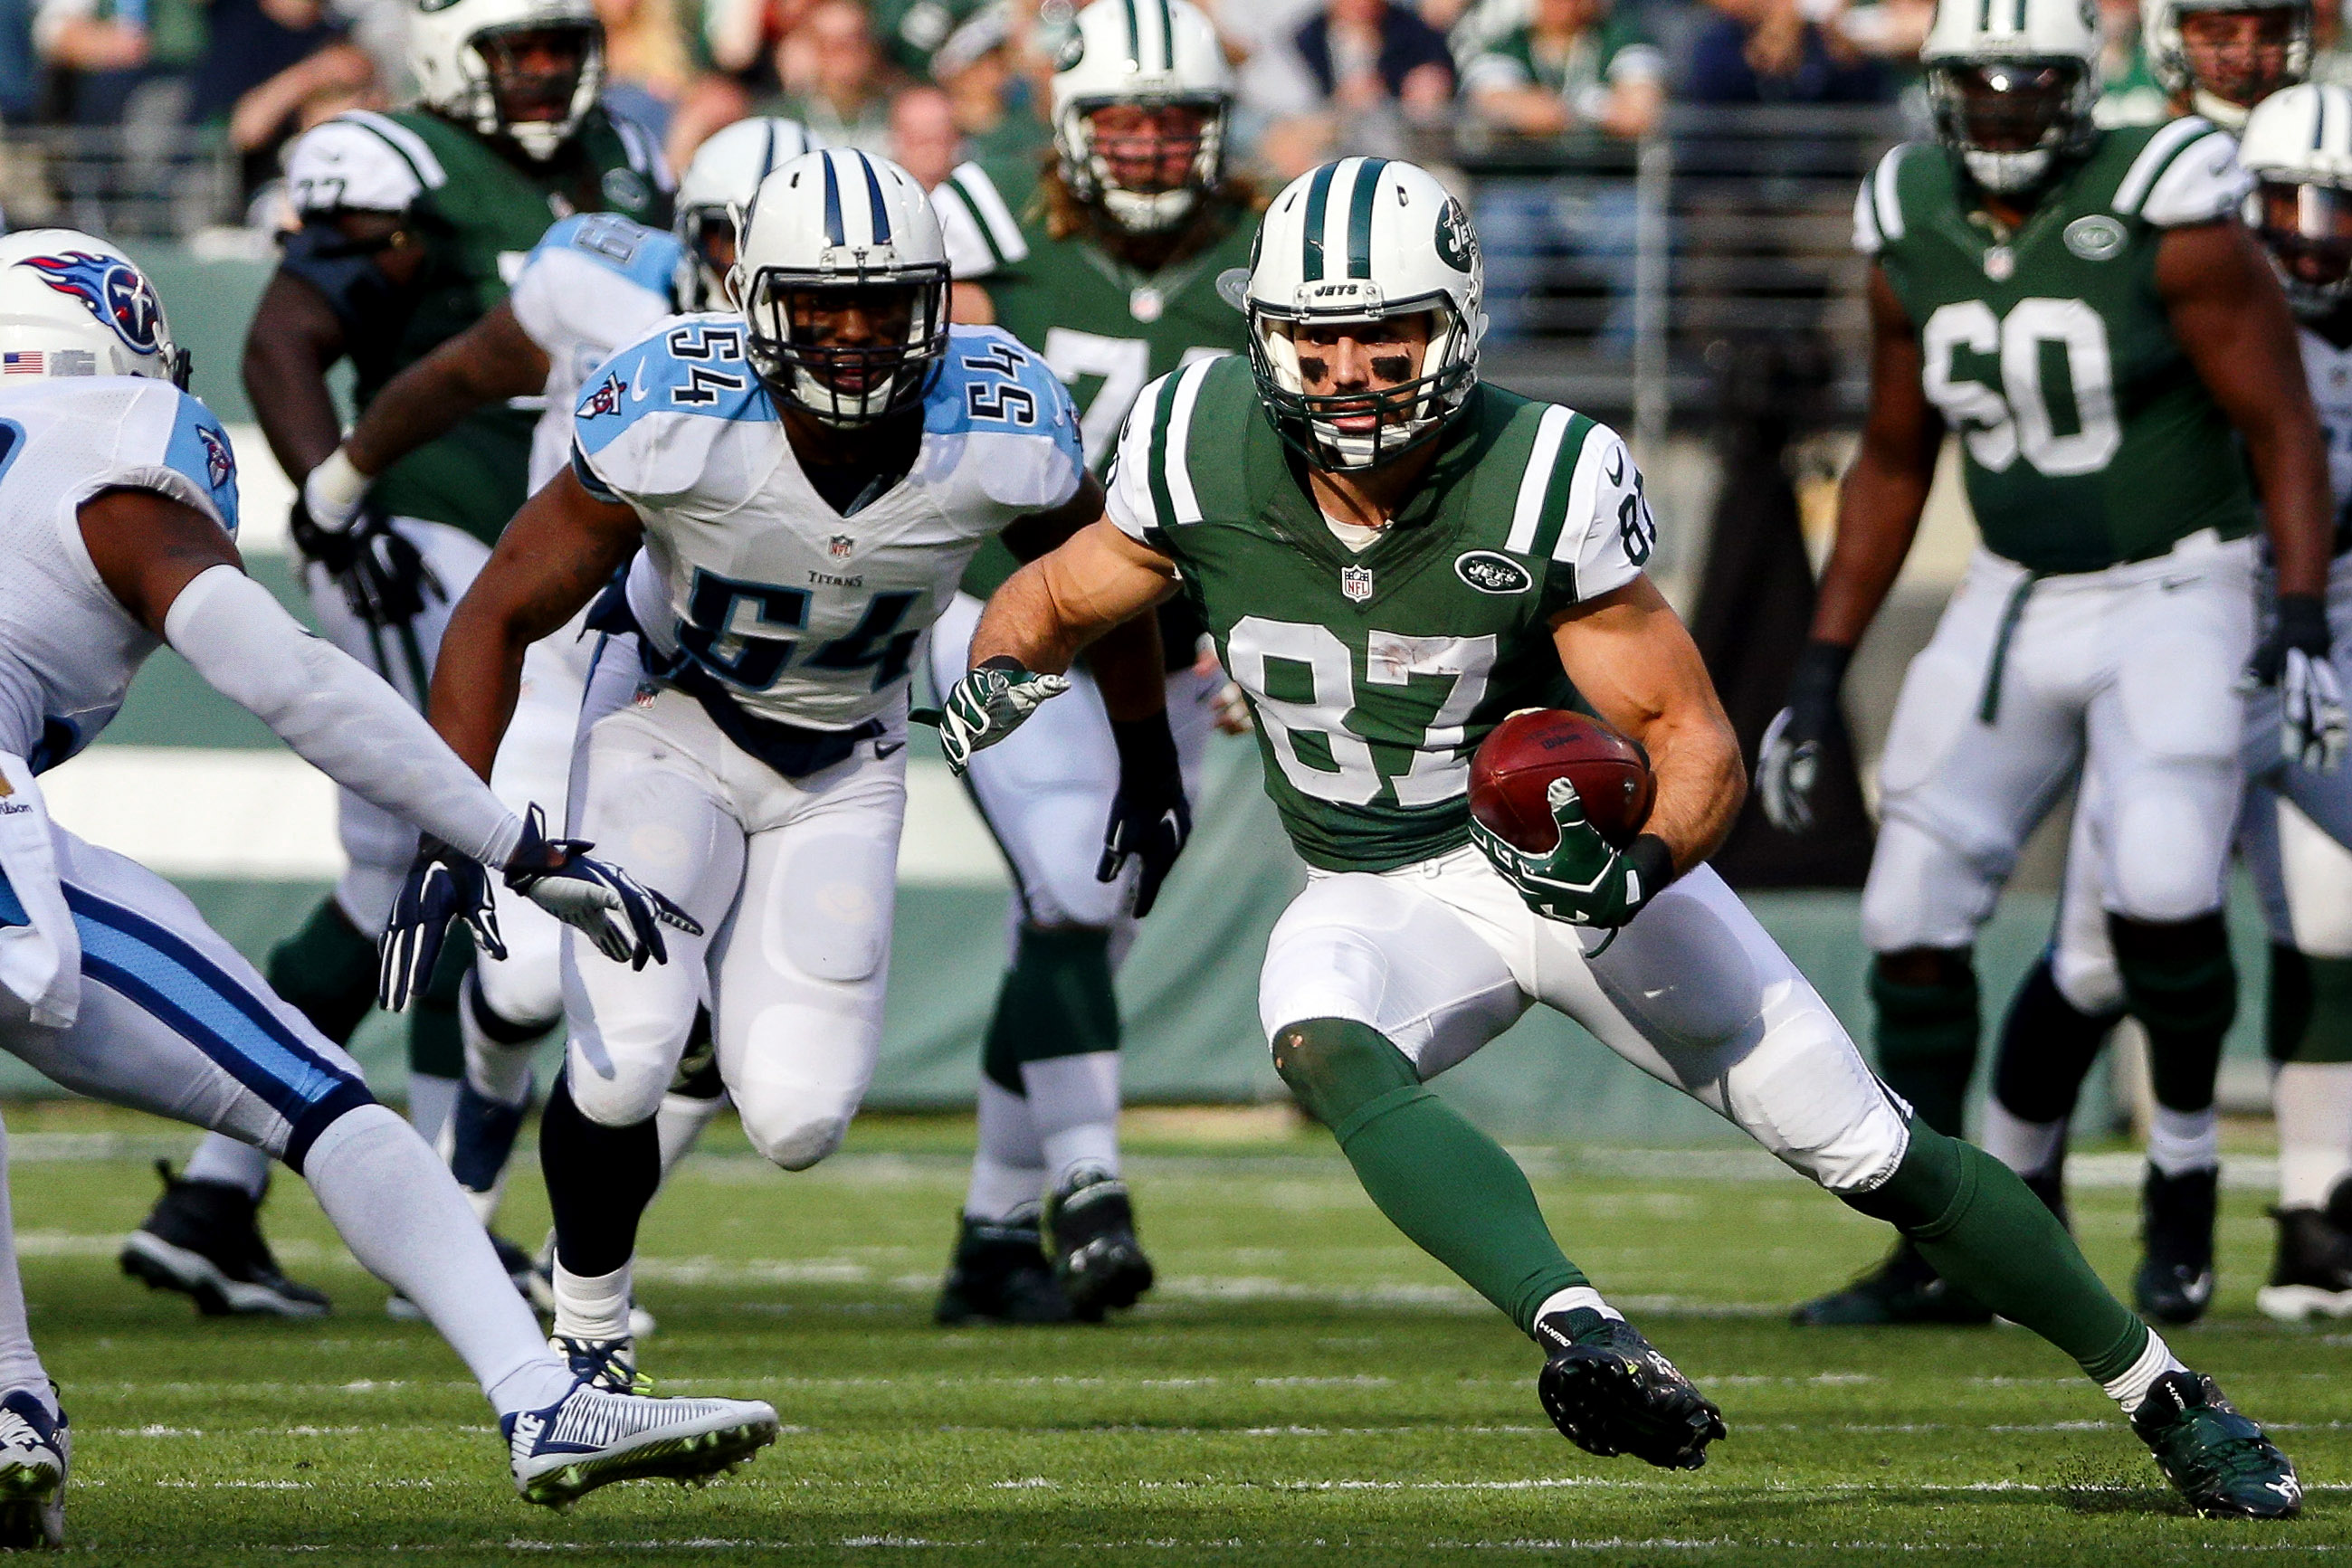 8994875-nfl-tennessee-titans-at-new-york-jets-1